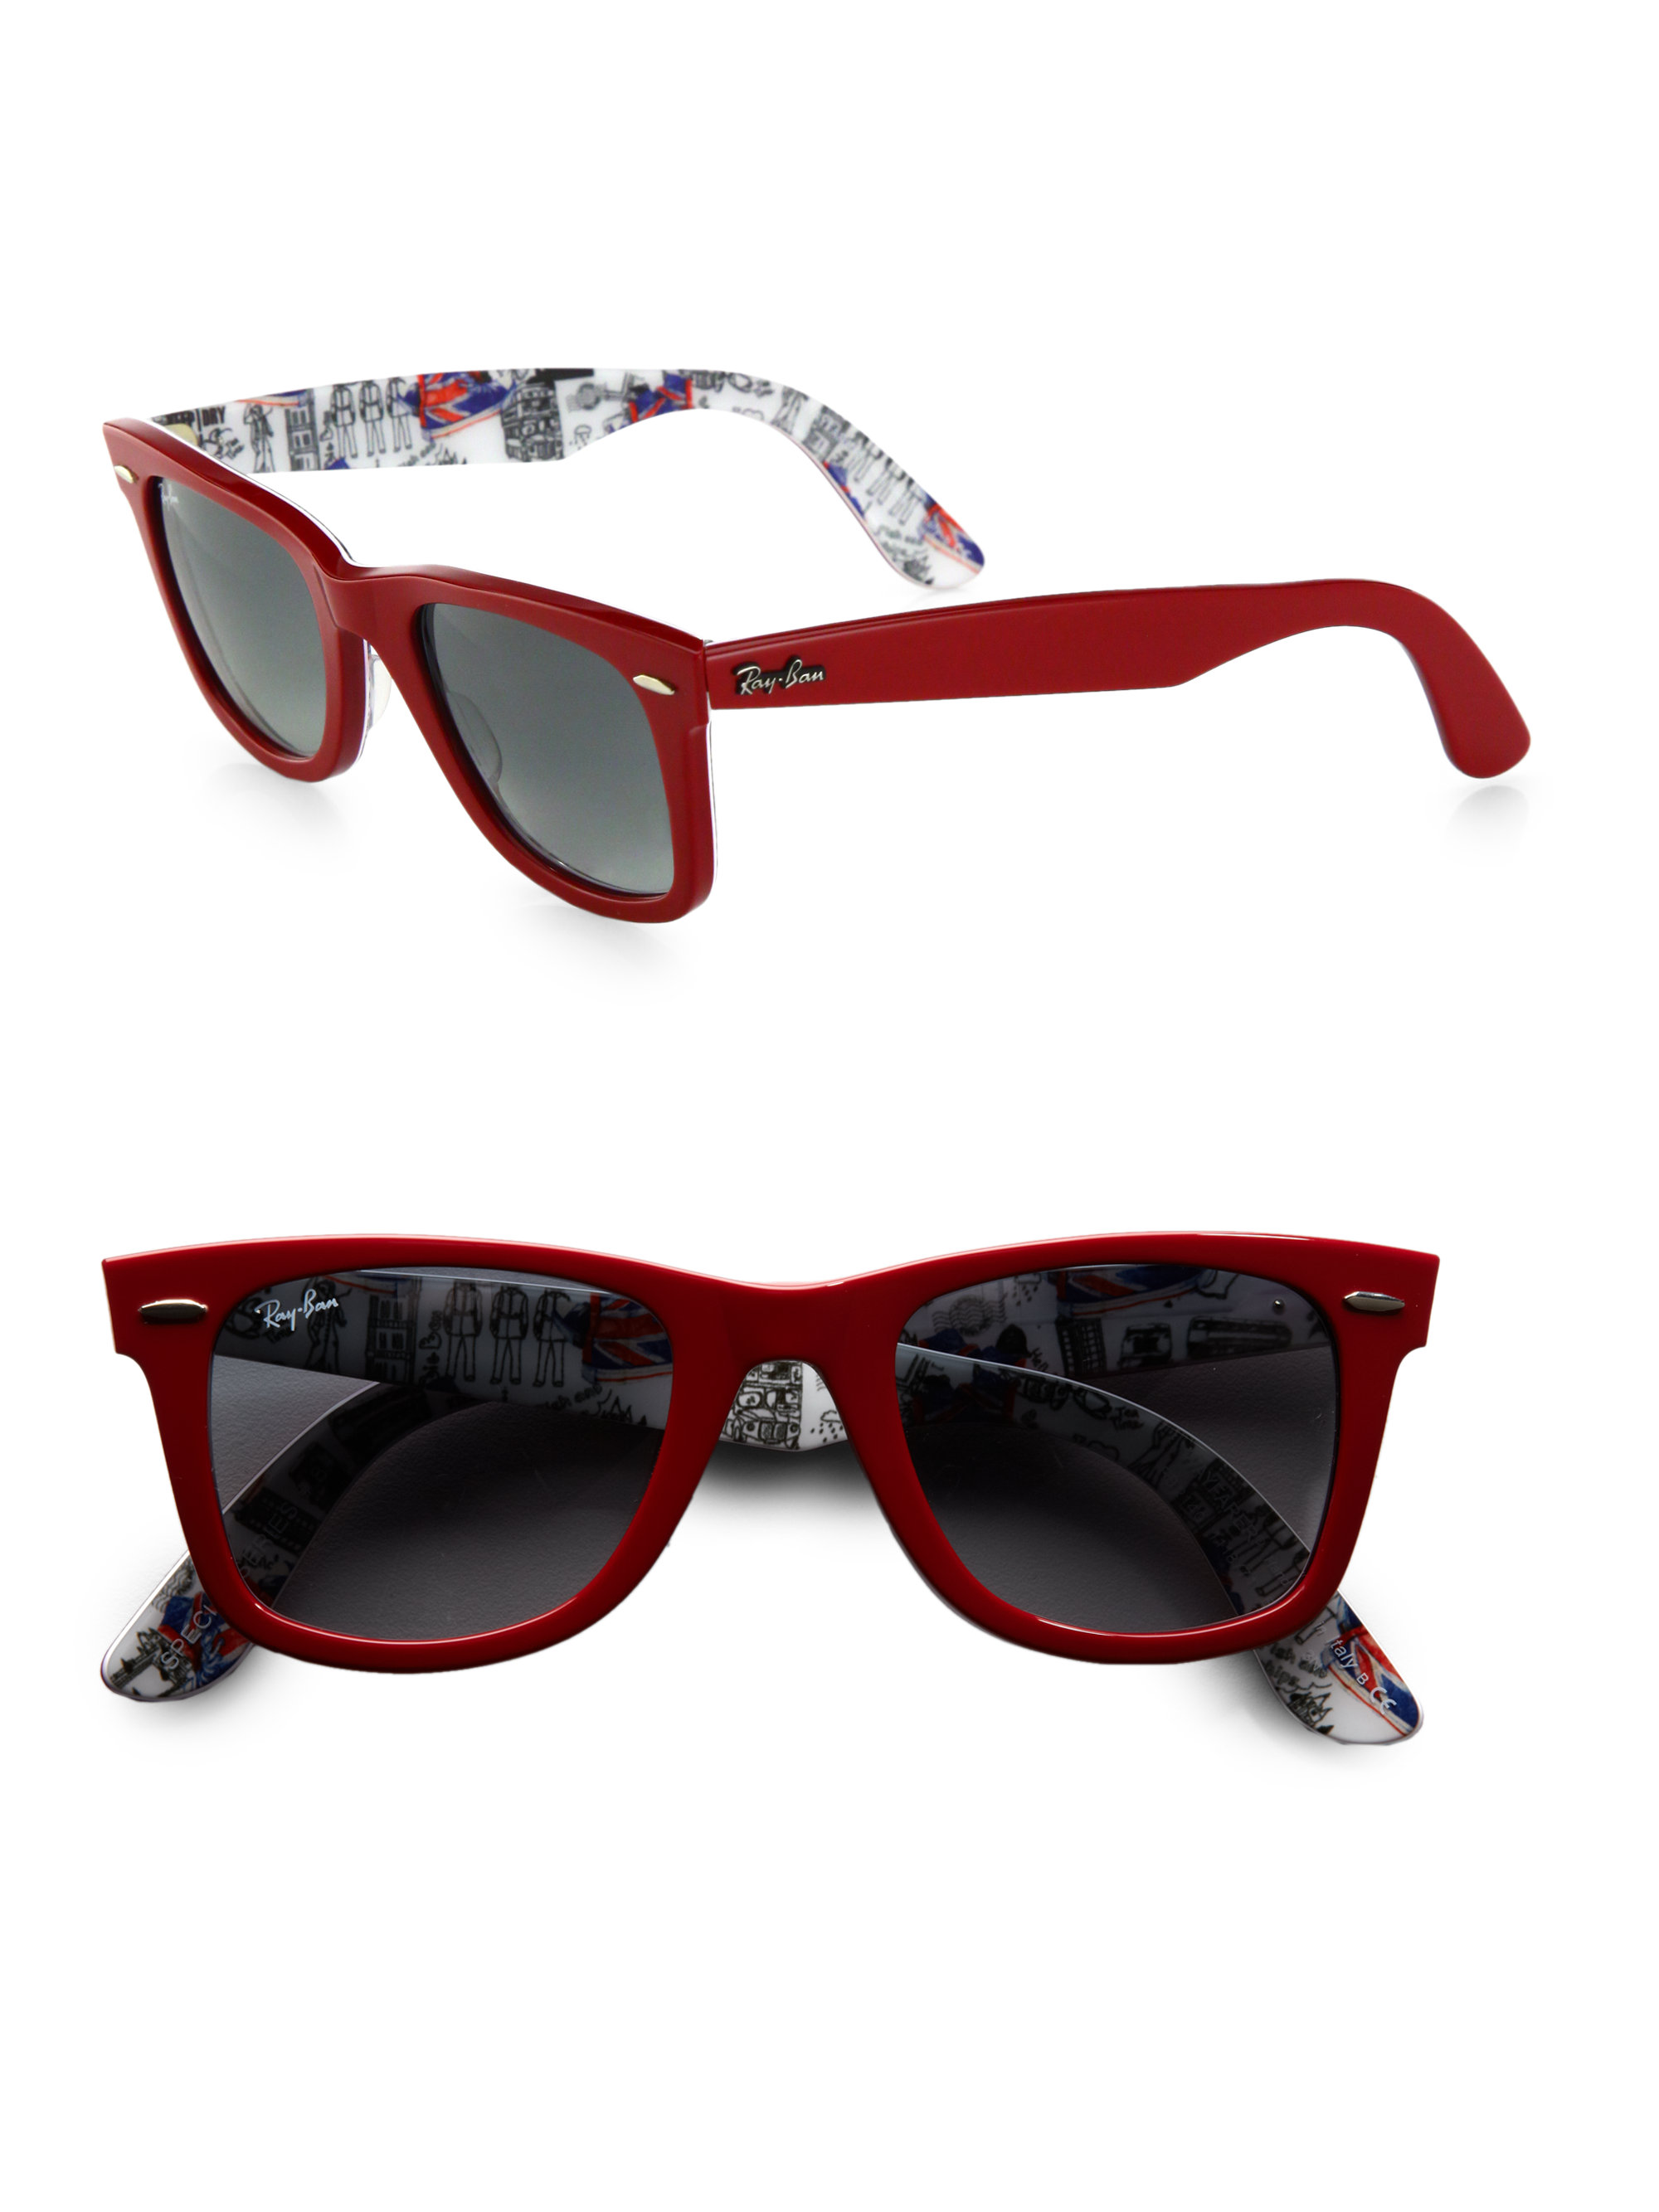 Ray-Ban Technical Support Service in Usa. Shop center and dealerss, store centers locator.